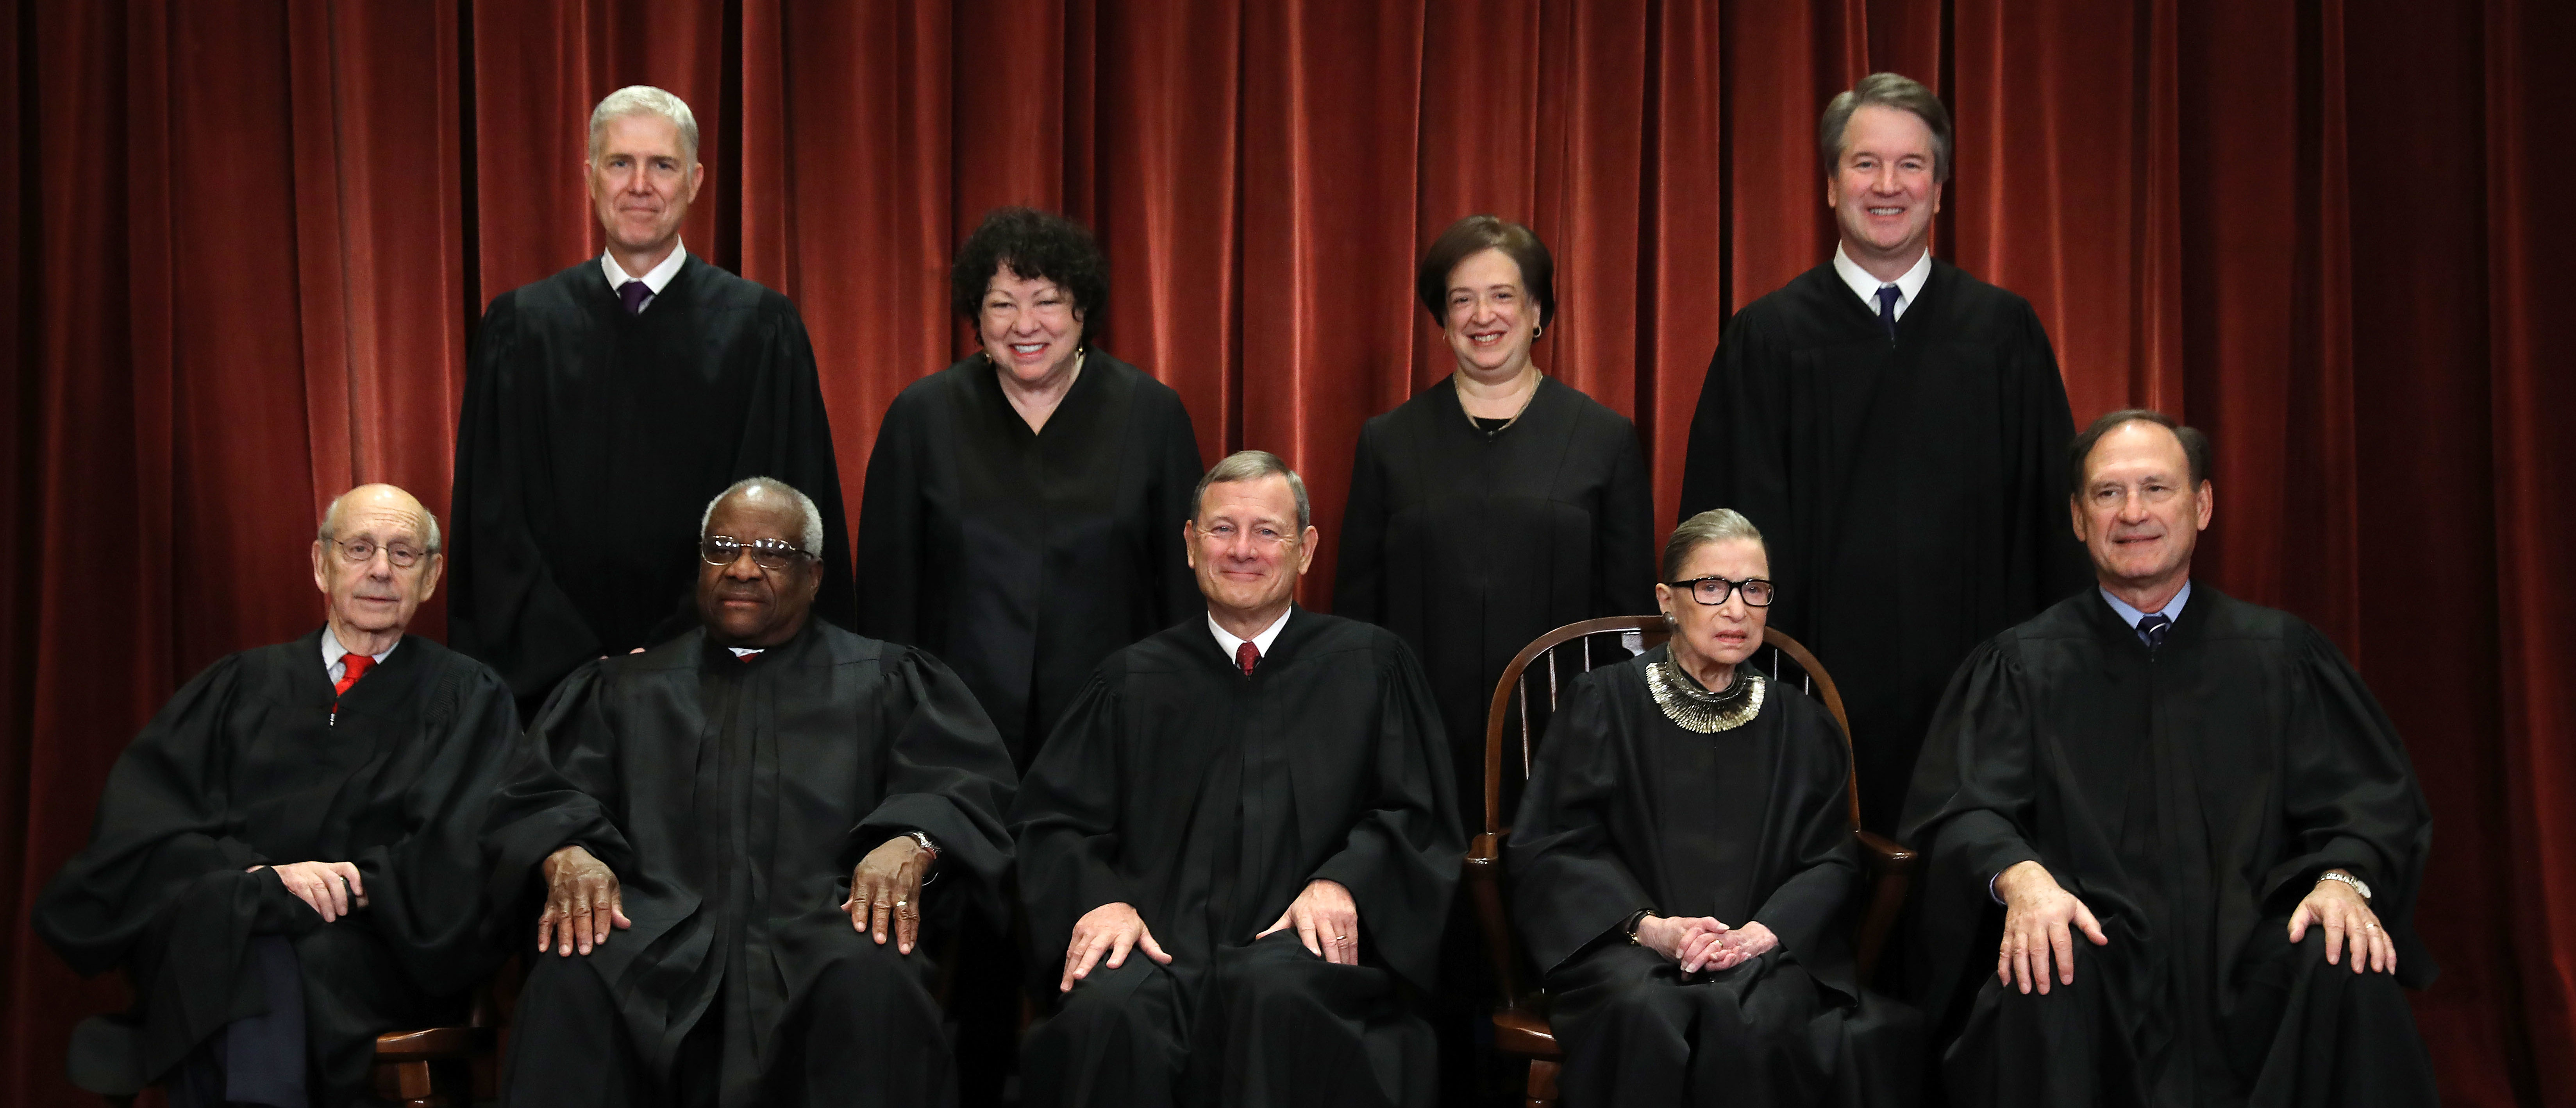 """WASHINGTON, DC - NOV. 30: United States Supreme Court (Front L-R) Associate Justice Stephen Breyer, Associate Justice Clarence Thomas, Chief Justice John Roberts, Associate Justice Ruth Bader Ginsburg, Associate Justice Samuel Alito, Jr., (Back L-R) Associate Justice Neil Gorsuch, Associate Justice Sonia Sotomayor, Associate Justice Elena Kagan and Associate Justice Brett Kavanaugh pose for their official portrait at the in the East Conference Room at the Supreme Court building Nov. 30, 2018 in Washington, DC. Earlier this month, Chief Justice Roberts publicly defended the independence and integrity of the federal judiciary against President Trump after he called a judge who had ruled against his administration's asylum policy """"an Obama judge."""" """"We do not have Obama judges or Trump judges, Bush judges or Clinton judges,"""" Roberts said in a statement. """"What we have is an extraordinary group of dedicated judges doing their level best to do equal right to those appearing before them. That independent judiciary is something we should all be thankful for."""" (Photo by Chip Somodevilla/Getty Images)"""